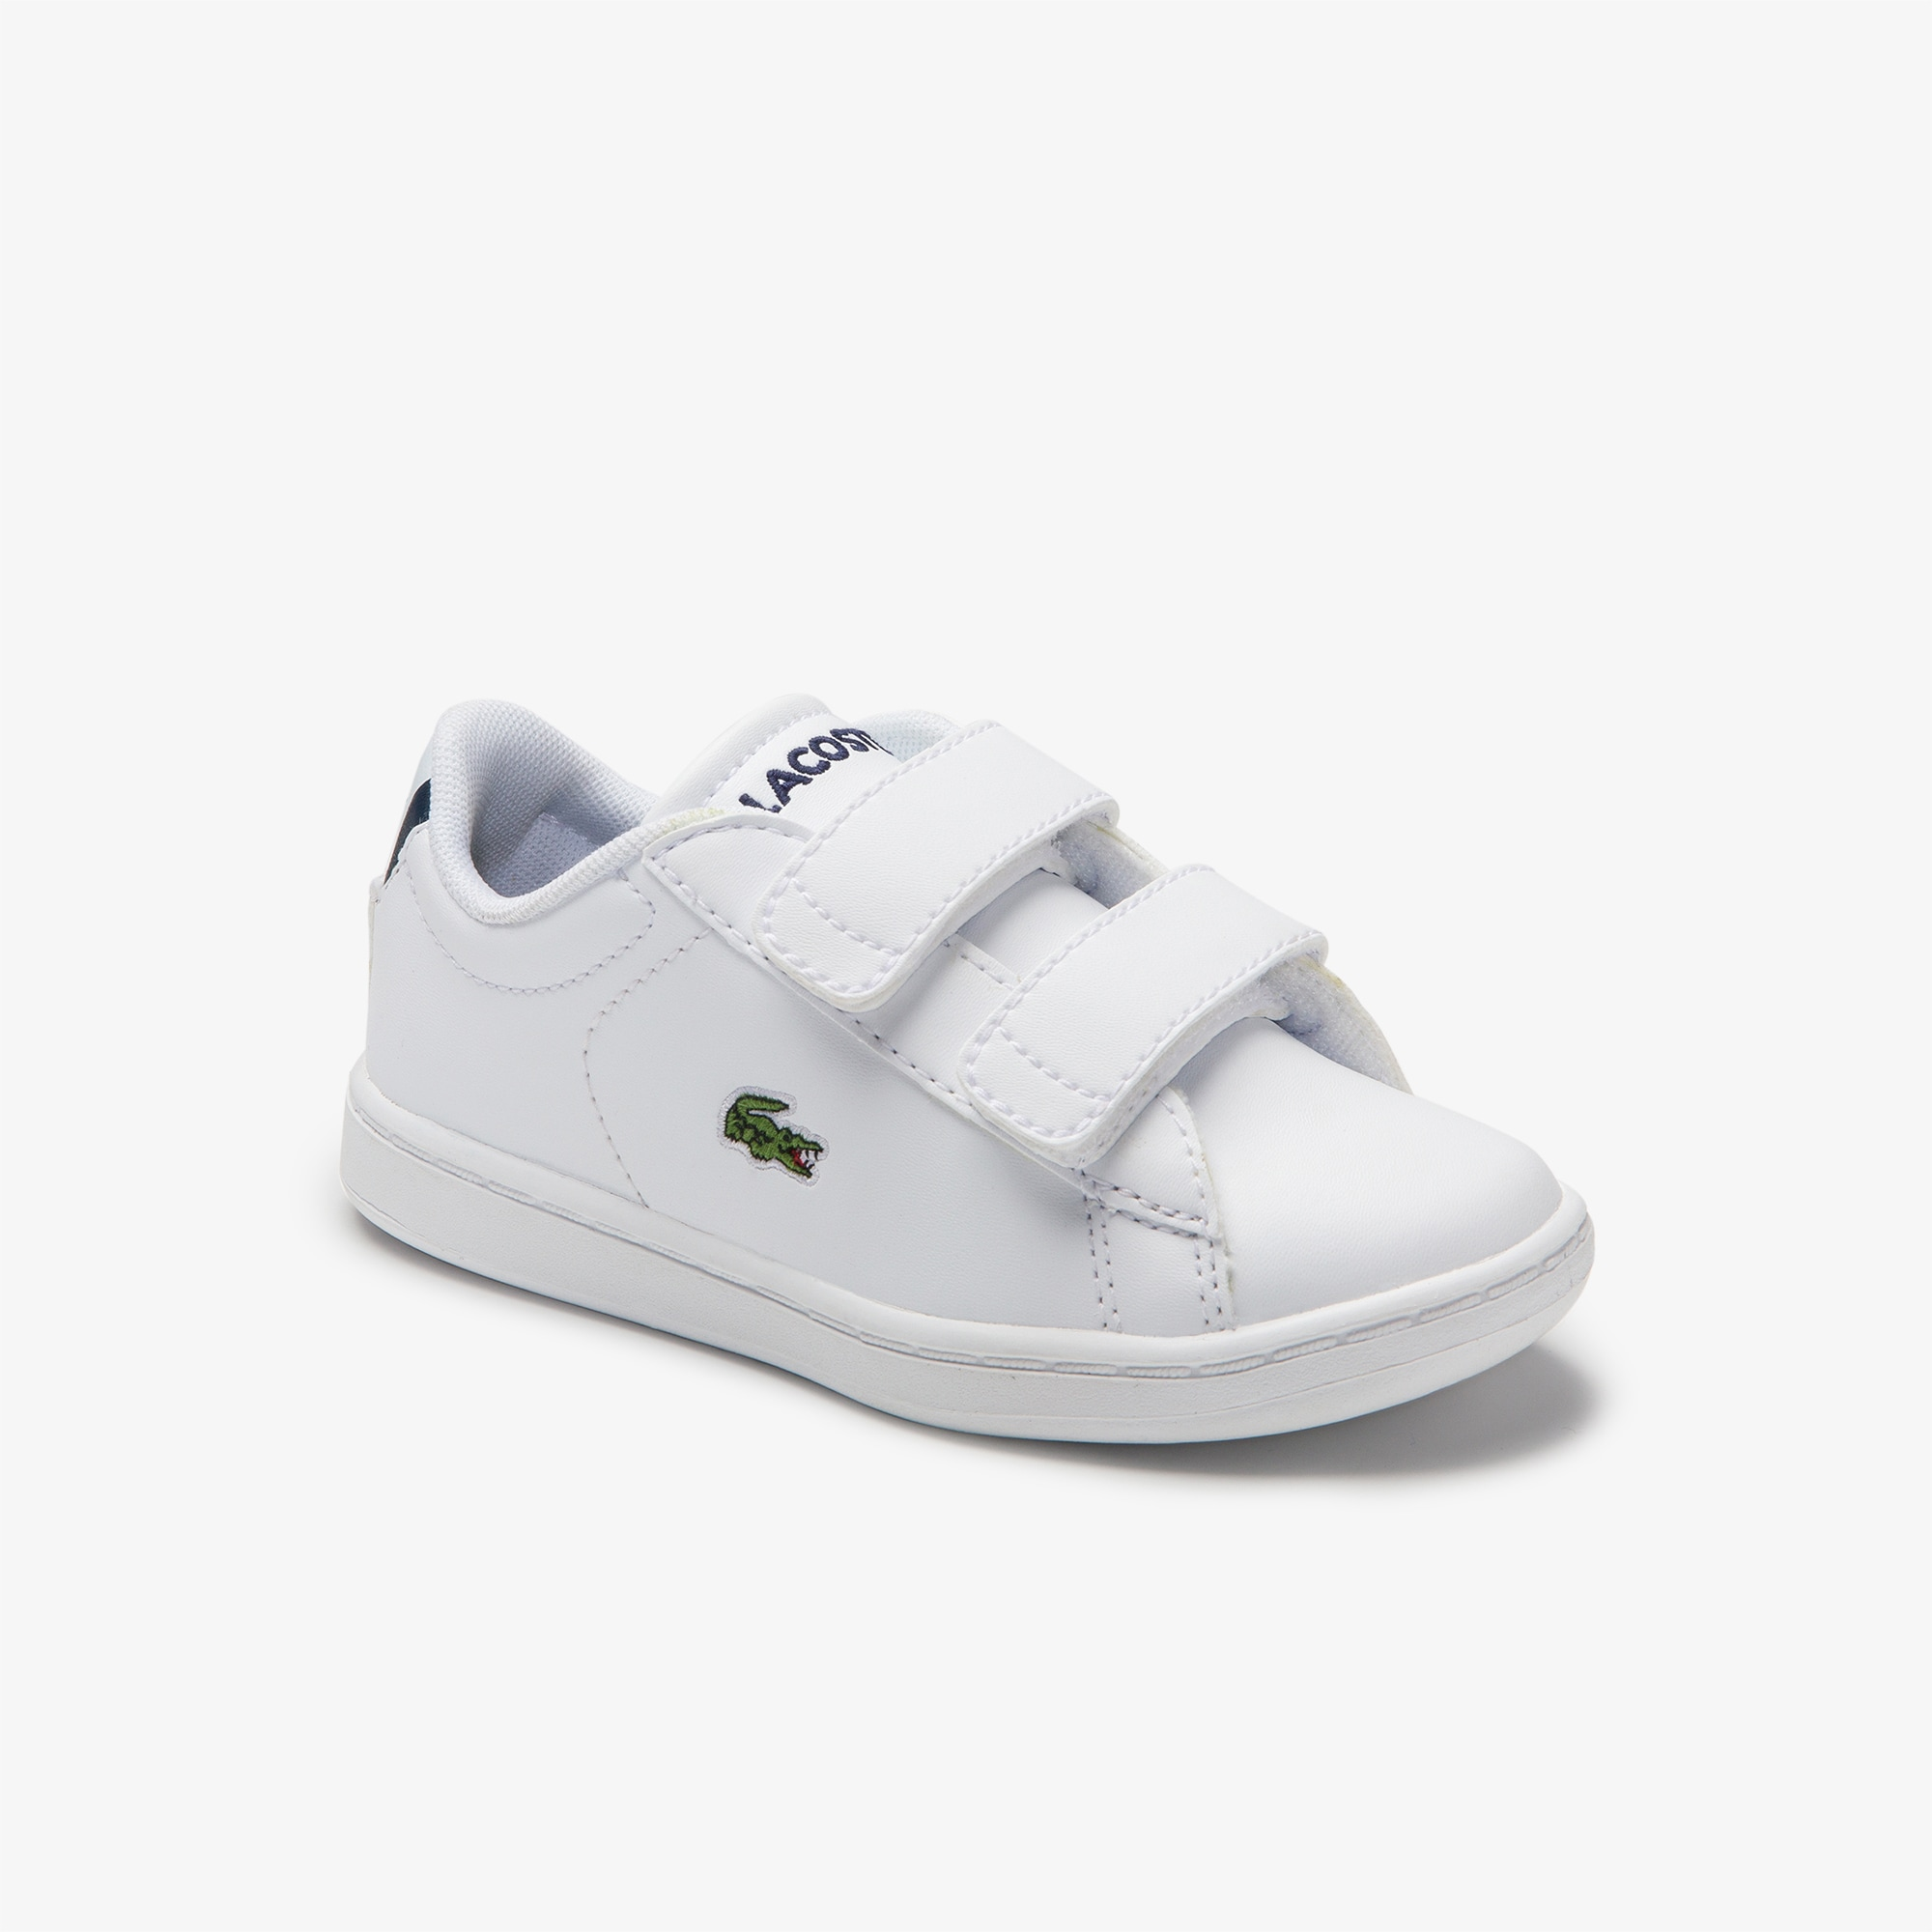 9f7db95f89 Infants' Carnaby Evo BL Synthetic Trainers | LACOSTE